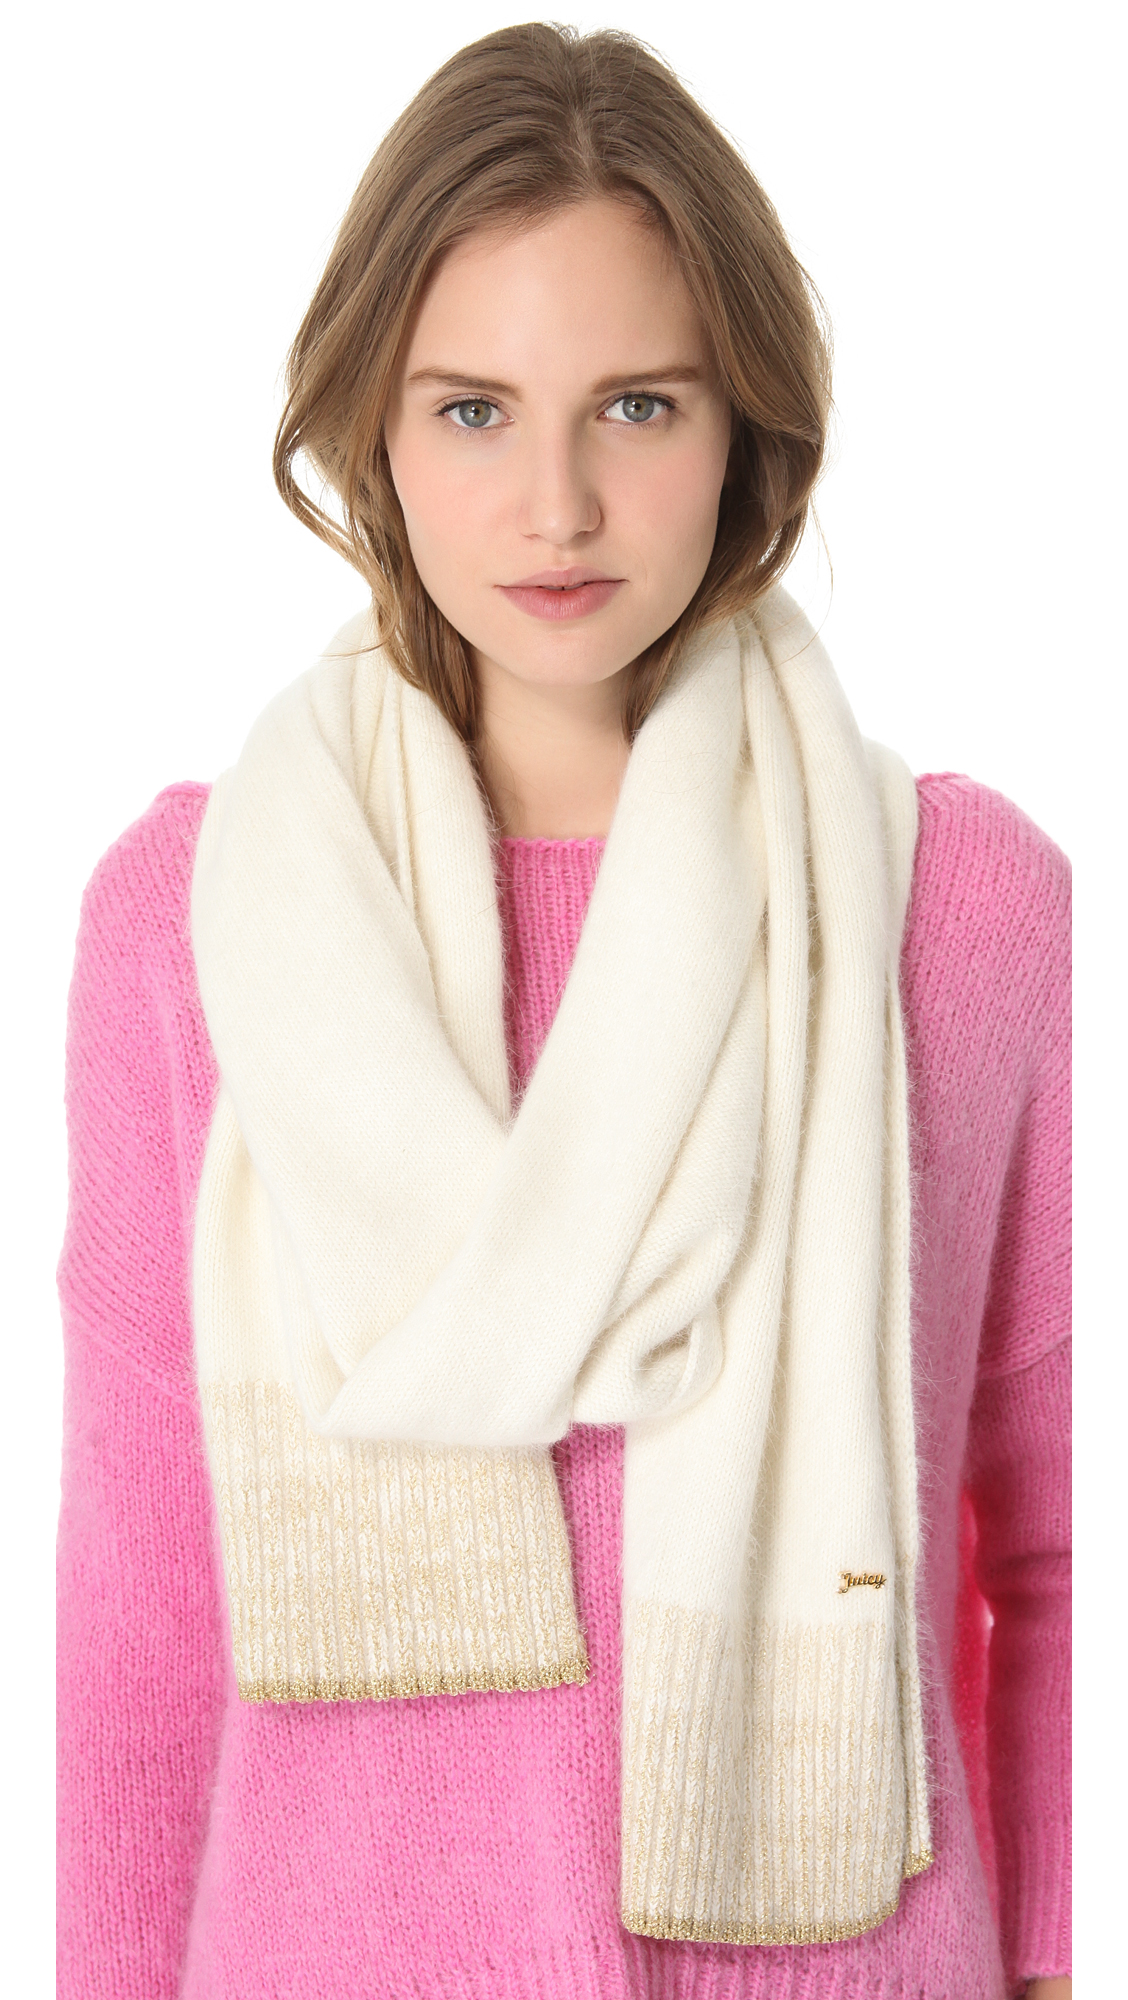 Juicy Couture Angora Scarf in White   Lyst